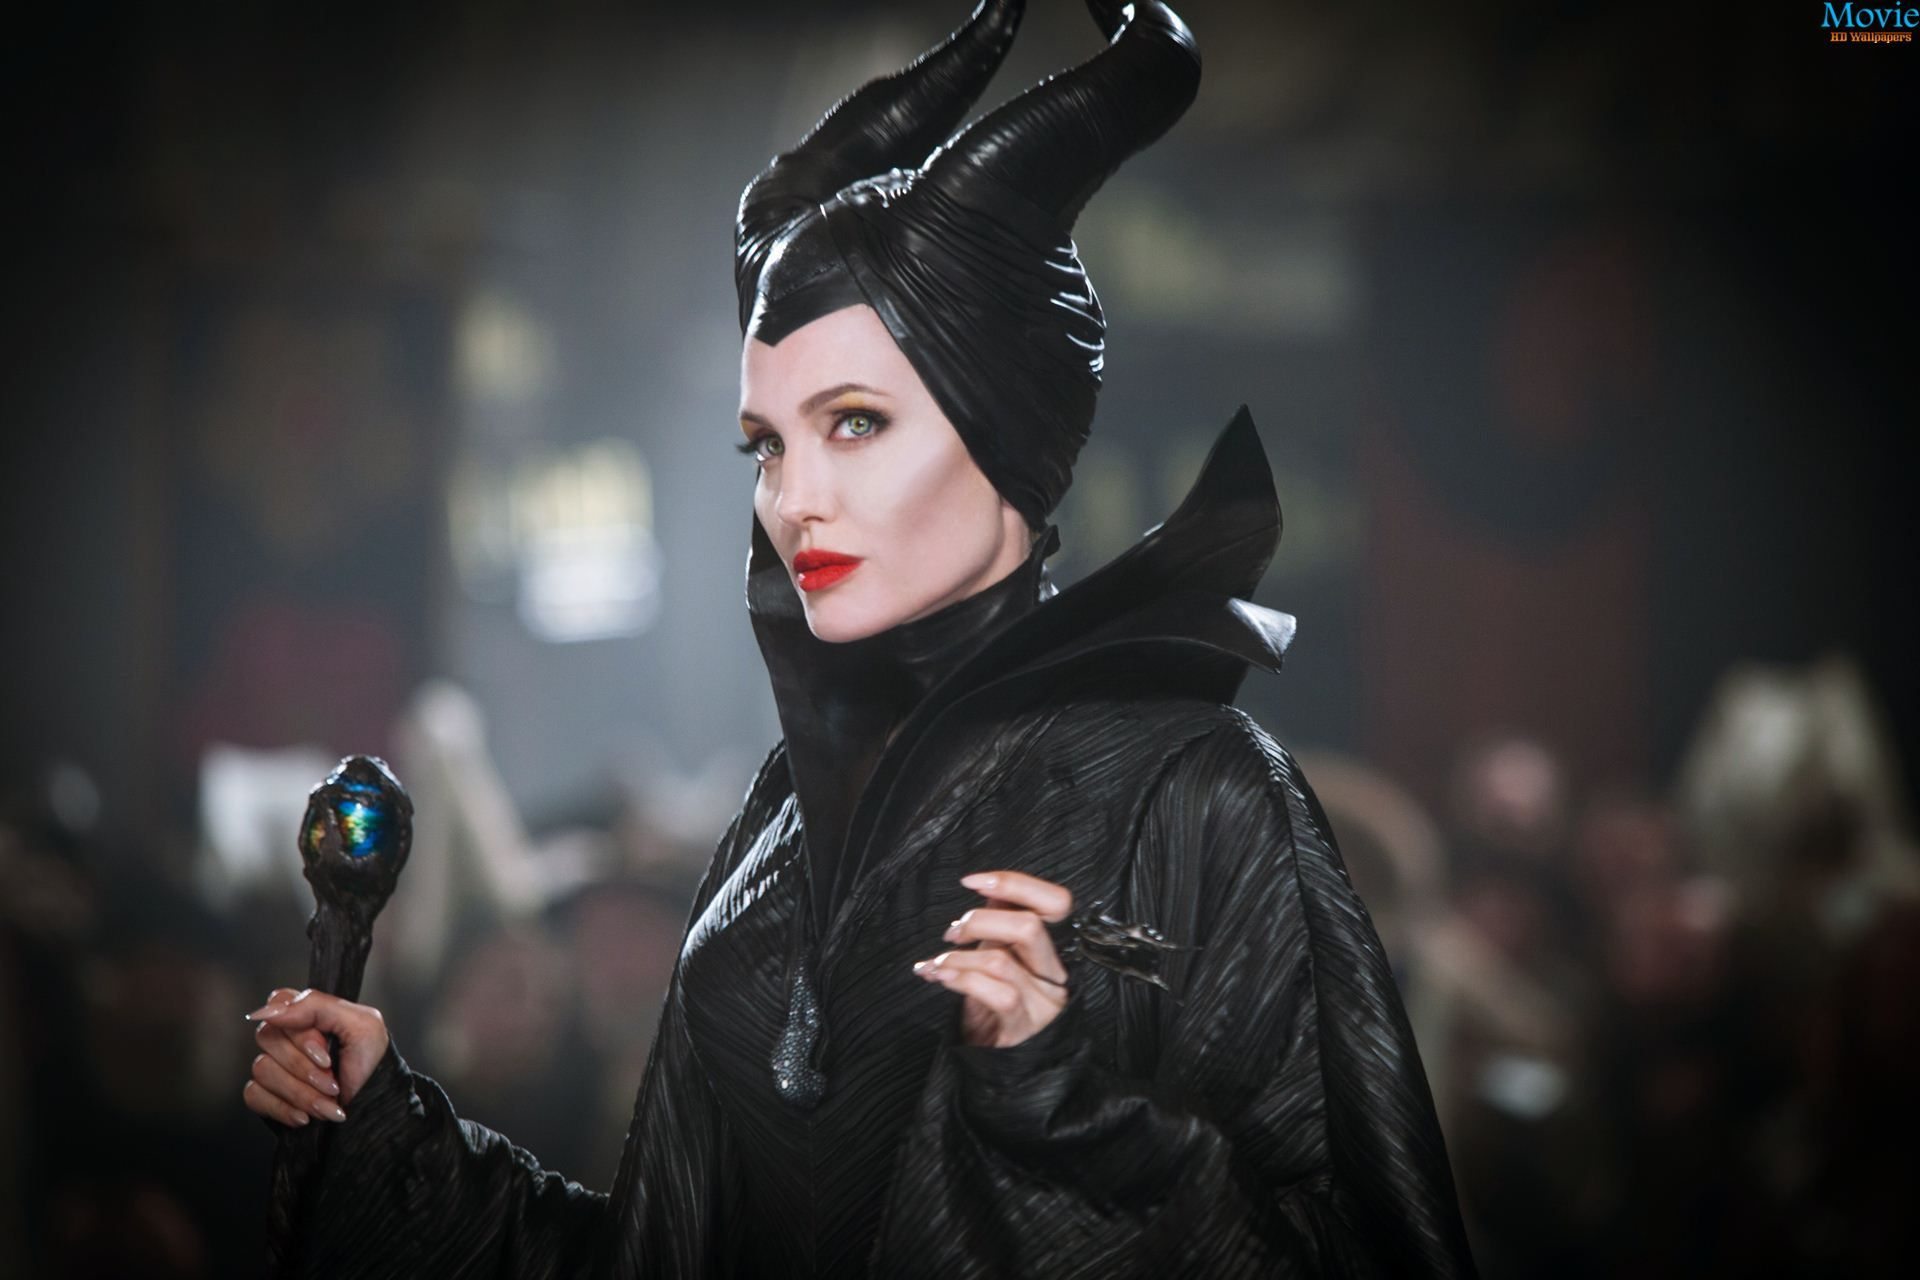 Maleficent Posters Play Up Angelina Jolies Piercing